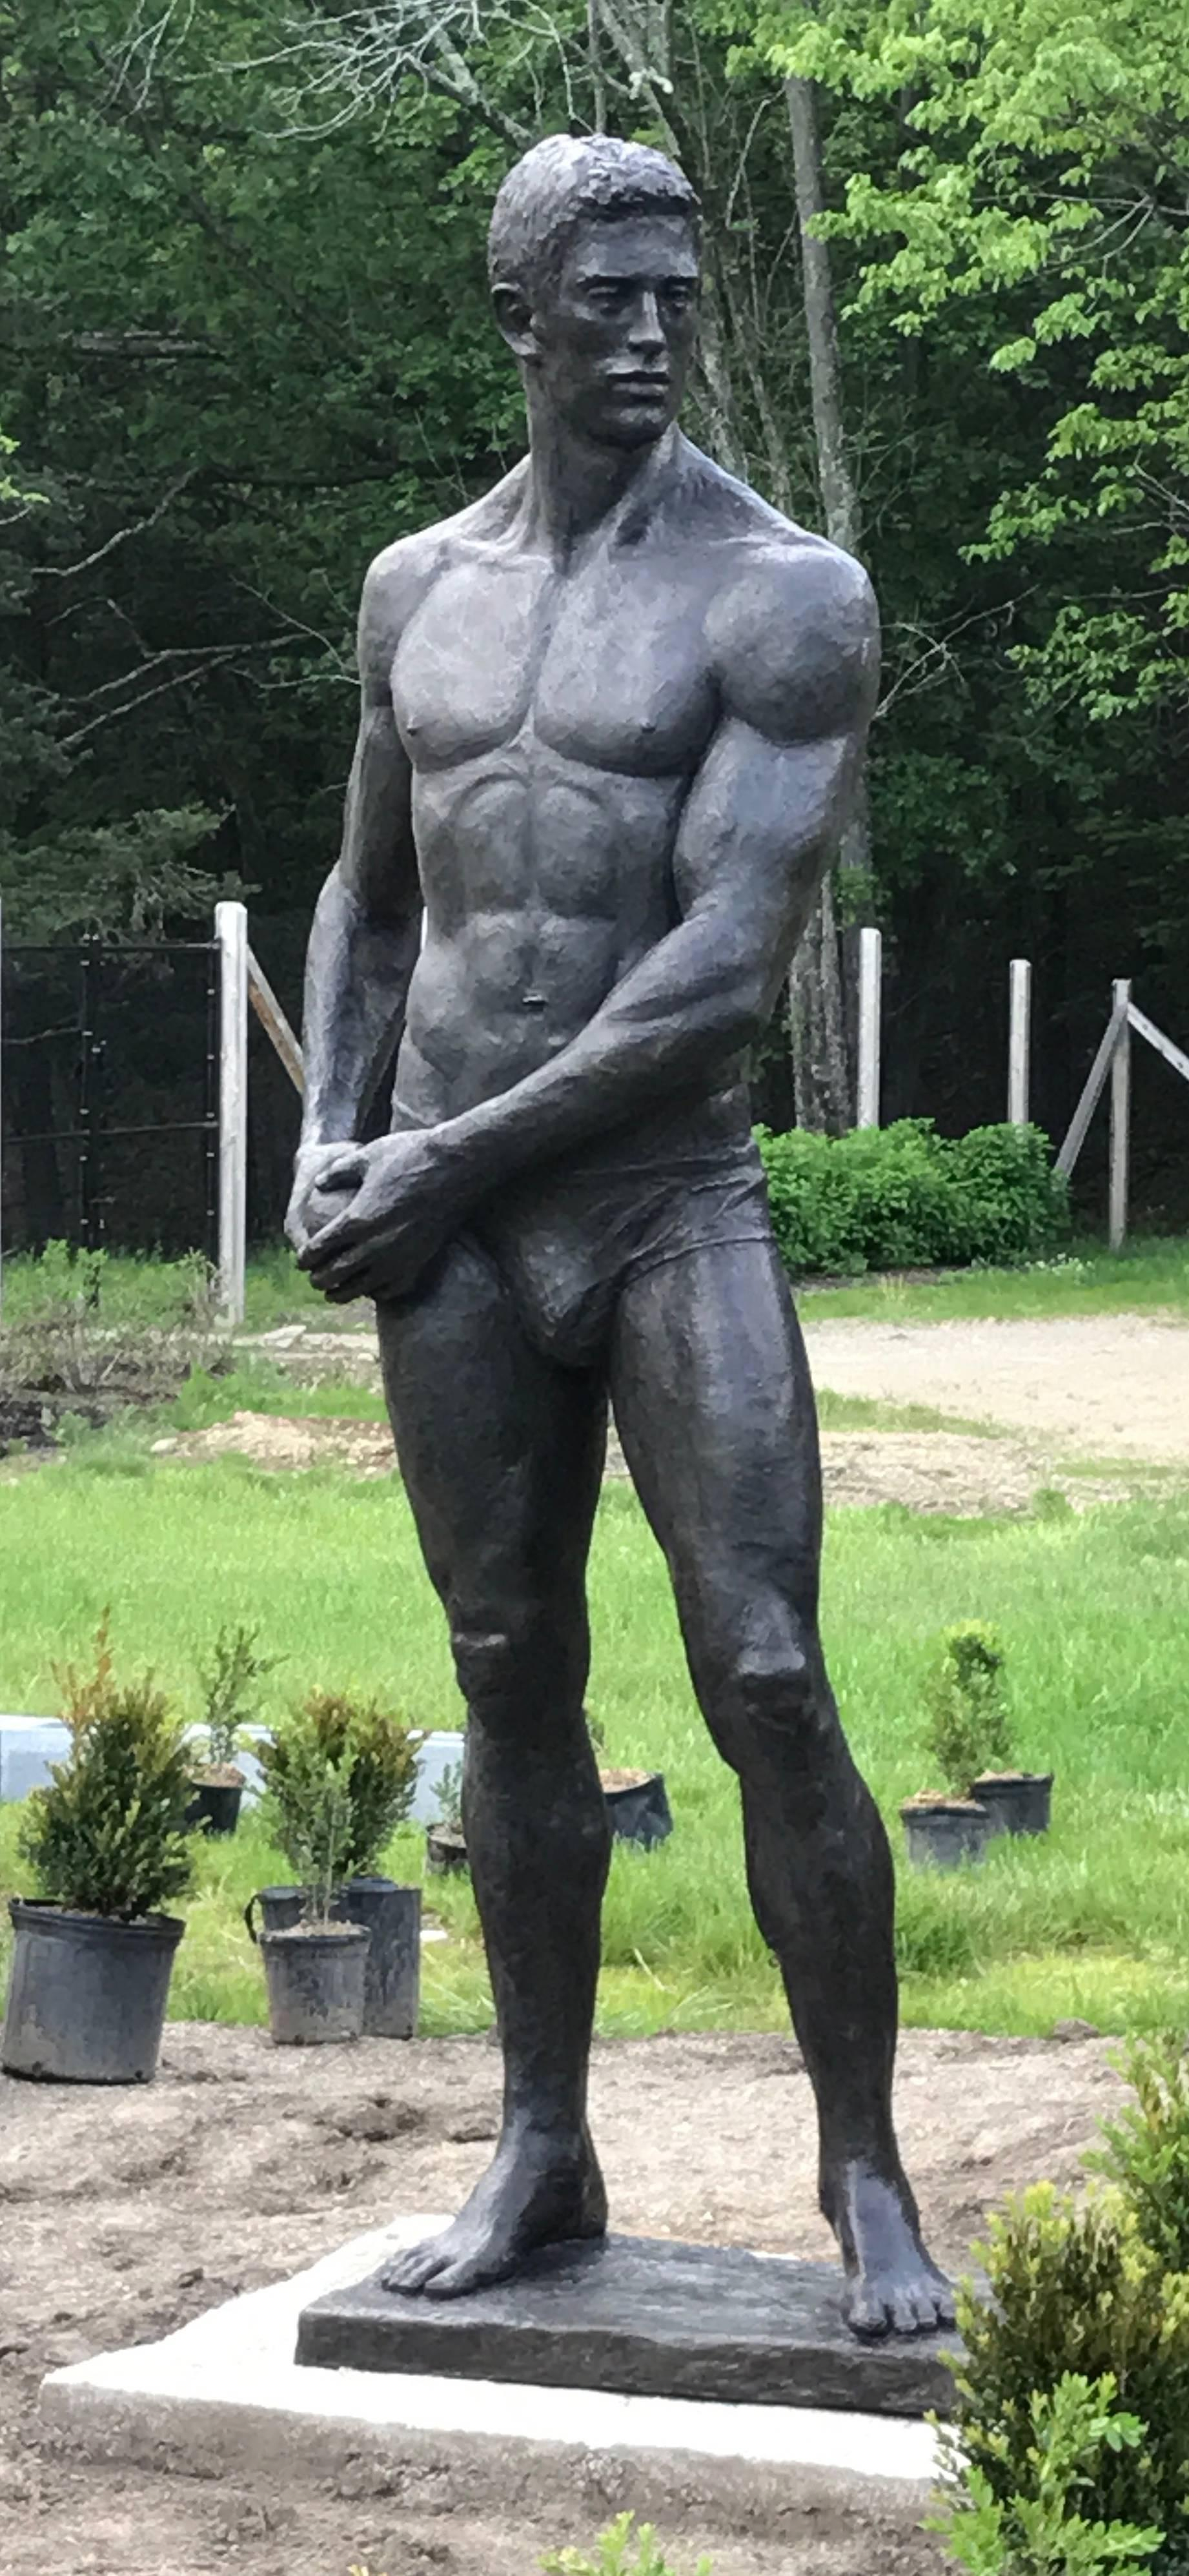 Statue of Athlete: Large Academic Style Bronze Figurative Sculpture of Nude Male